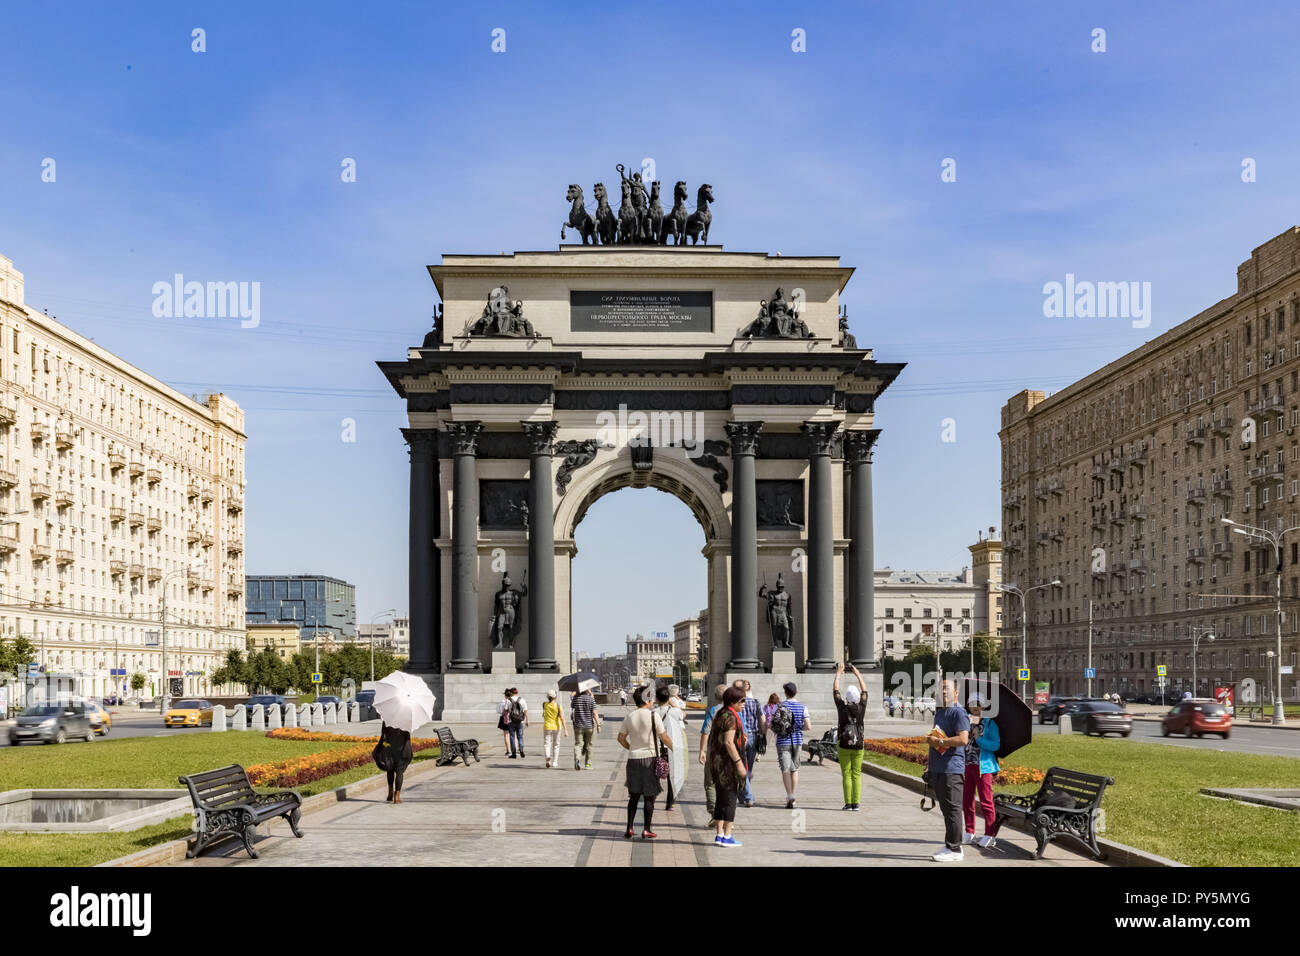 """Moscow, Moscow, Russia. 26th Aug, 2018. Moscow Triumphal Gates (Triumphal arch) ''"""" a triumphal arch in Moscow. Are for the first time built in 1829 ''"""" 1834 on the project of the architect O.I. Bowe at Tverskaya Zastava Square in honor of defeat of troops of Napoleon and a victory of the Russian people in Patriotic war of 1812. Are sorted in 1936. The copy of gate is built in 1966 ''"""" 1968 on V.Ya. Libson's project on Kutuzovsky Avenue, nowadays ''"""" Victory Squares Credit: Alexey Bychkov/ZUMA Wire/Alamy Live News - Stock Image"""